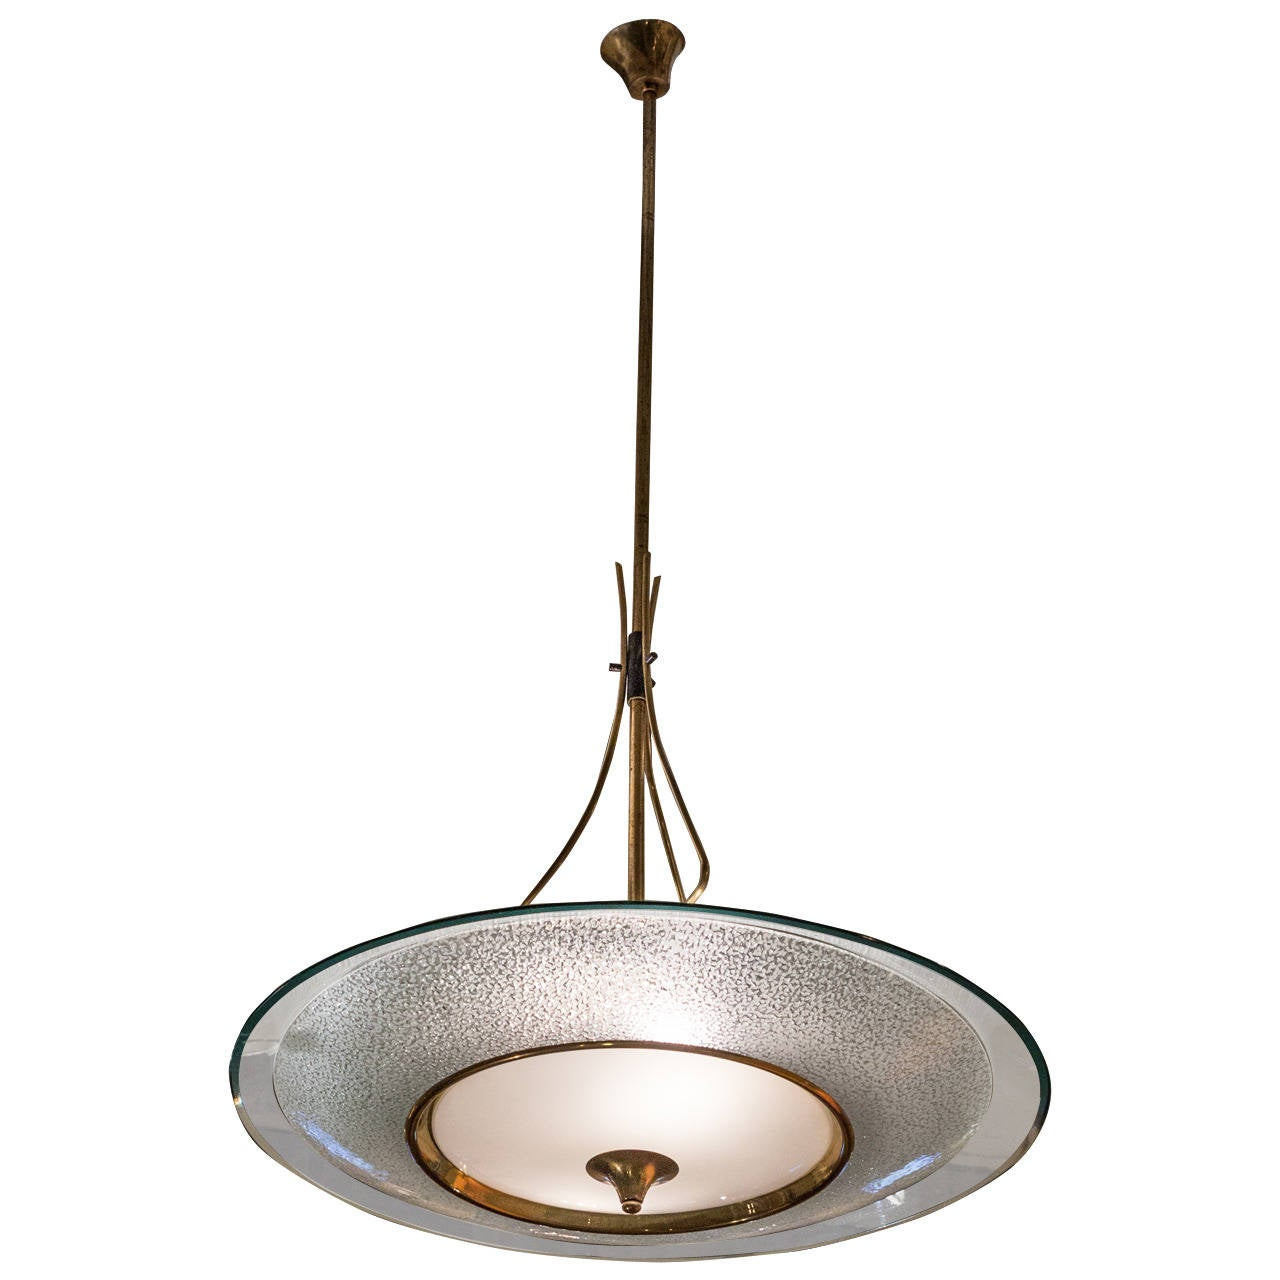 Amazing mid century modern light fixture in the style of for Mid century modern pendant light fixtures